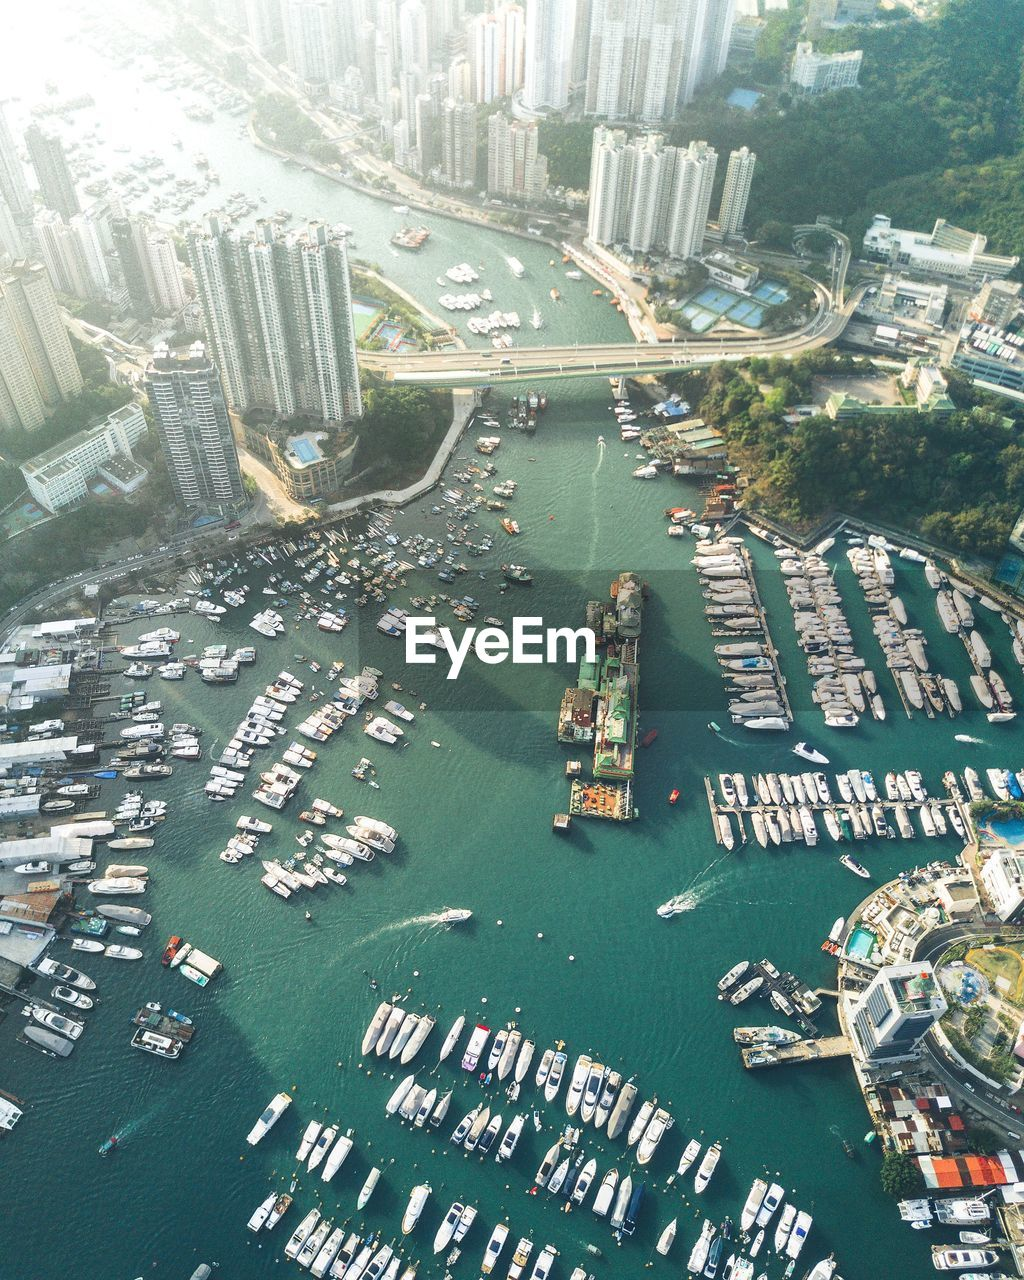 Aerial view of aberdeen marina club in city